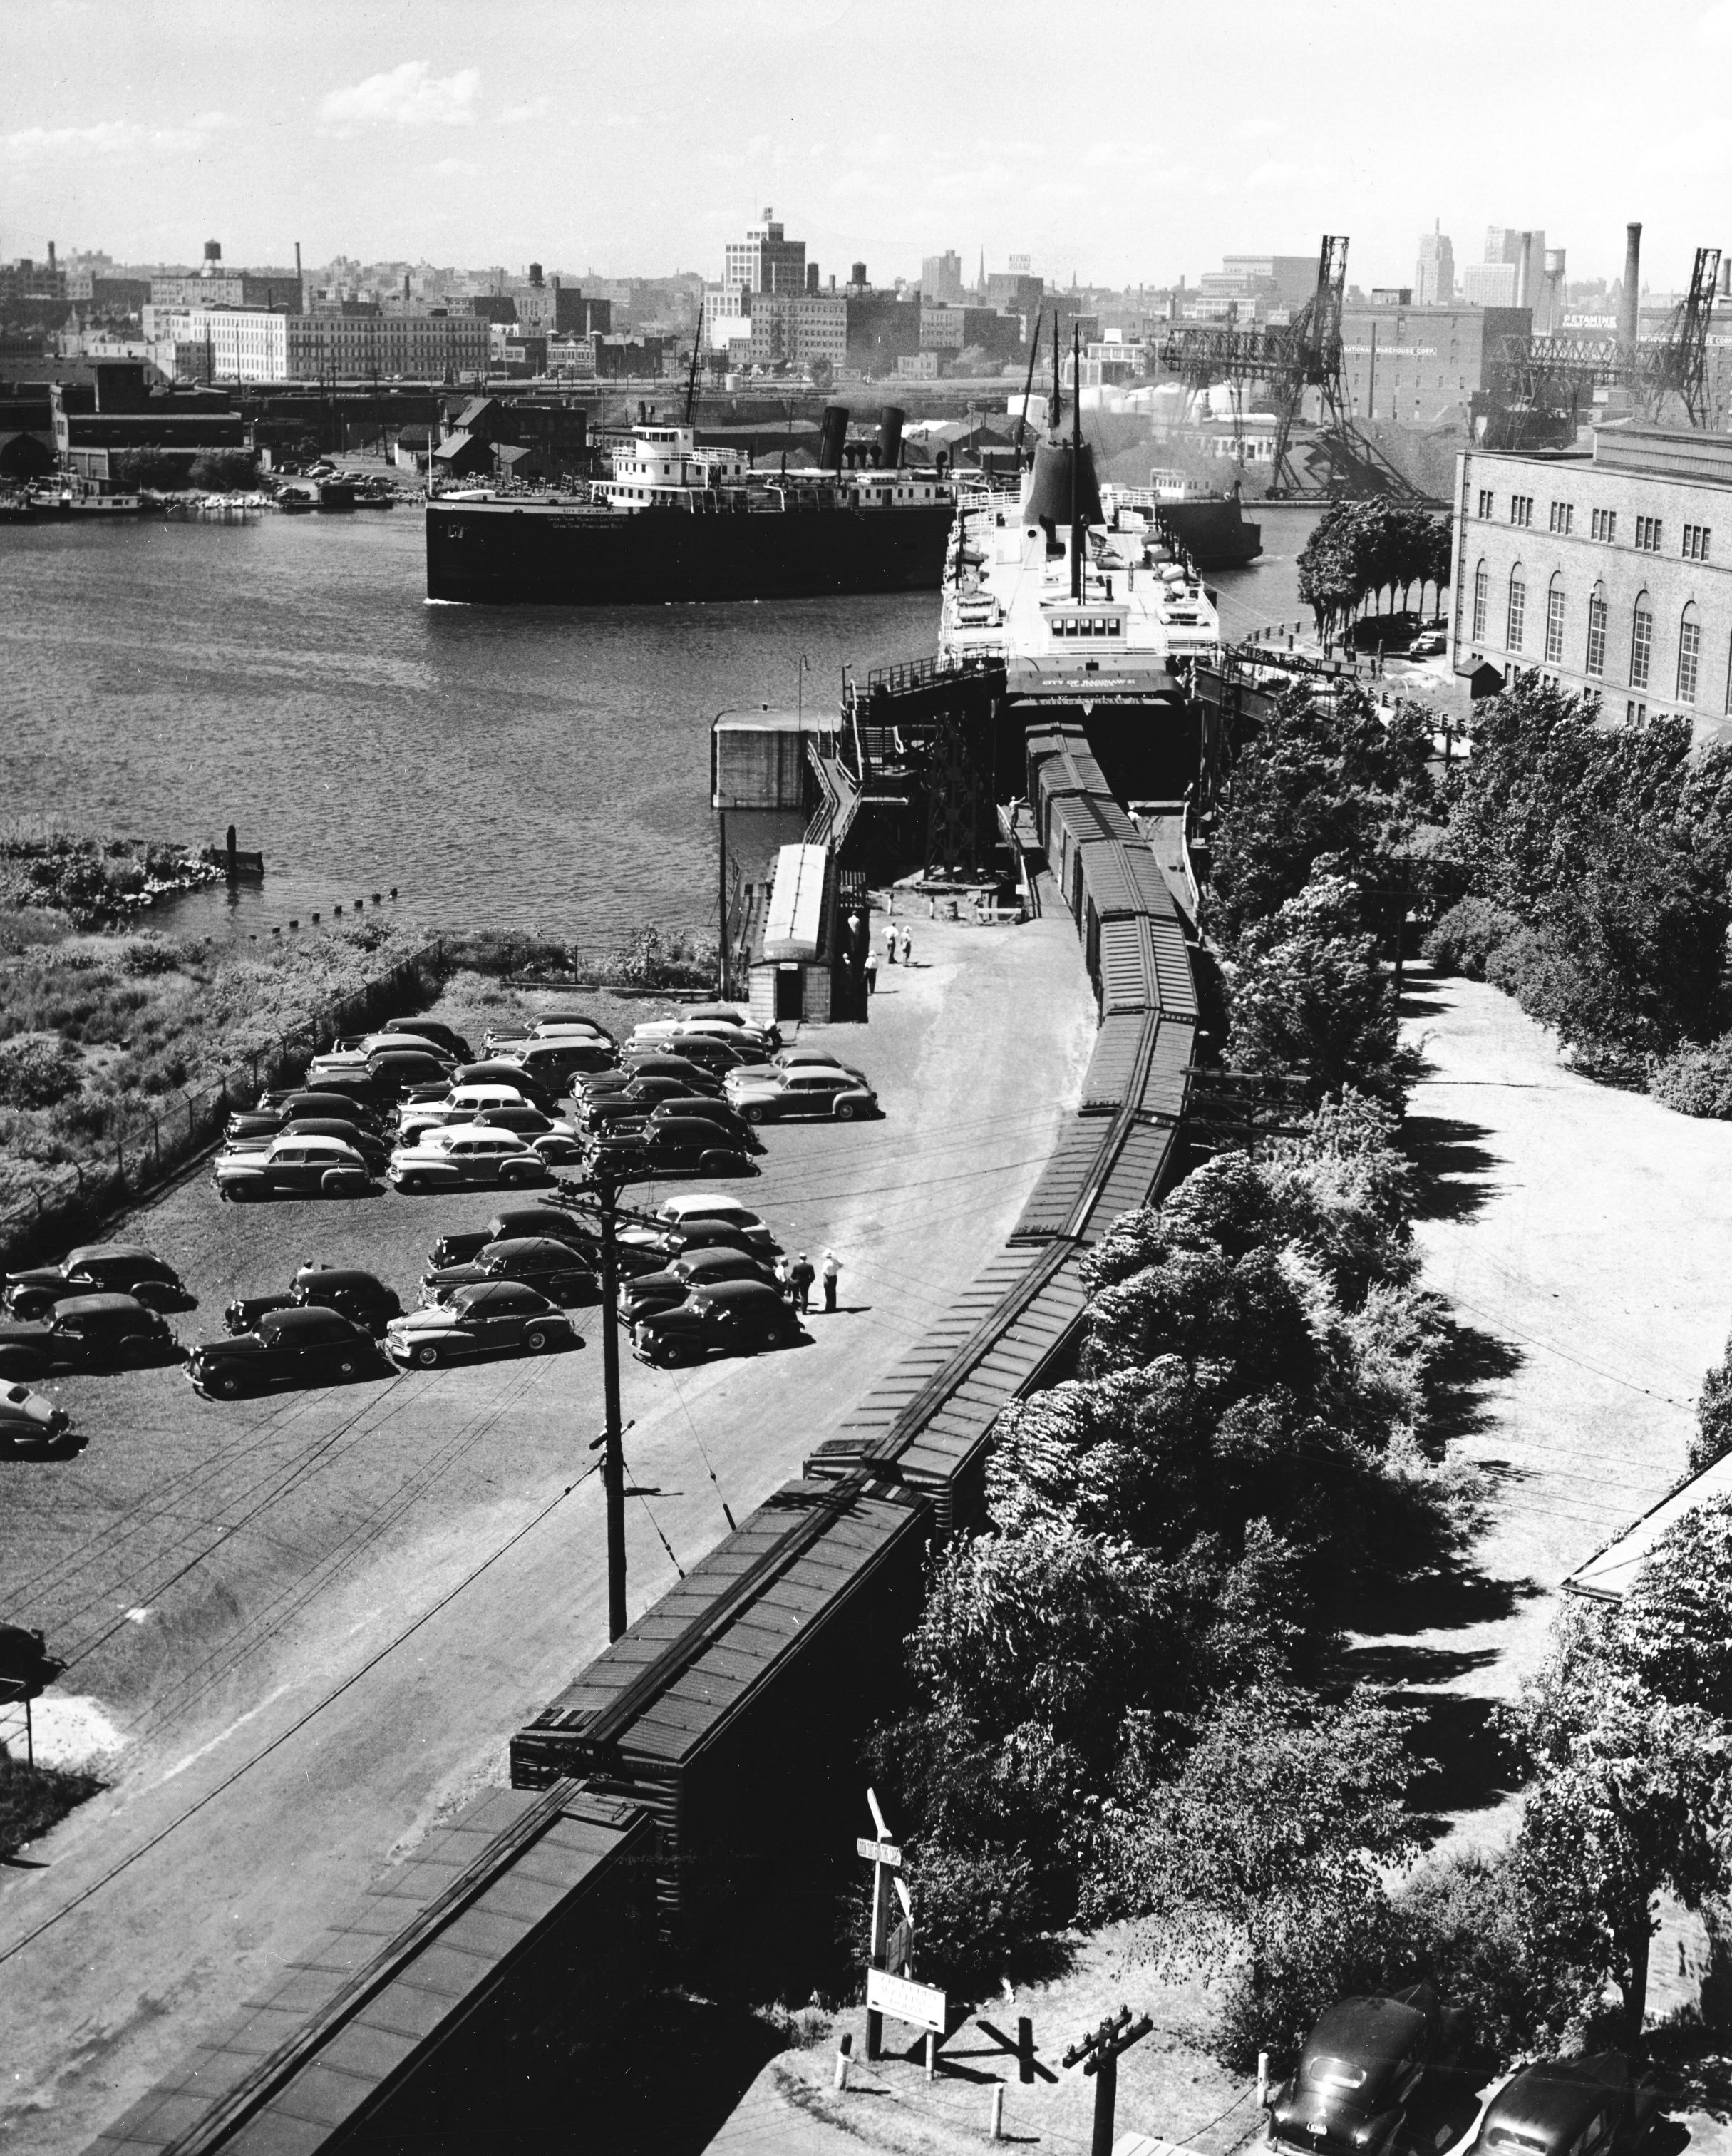 The City of Saginaw car ferry is docked and being loaded with railway cars in this photograph from 1946.